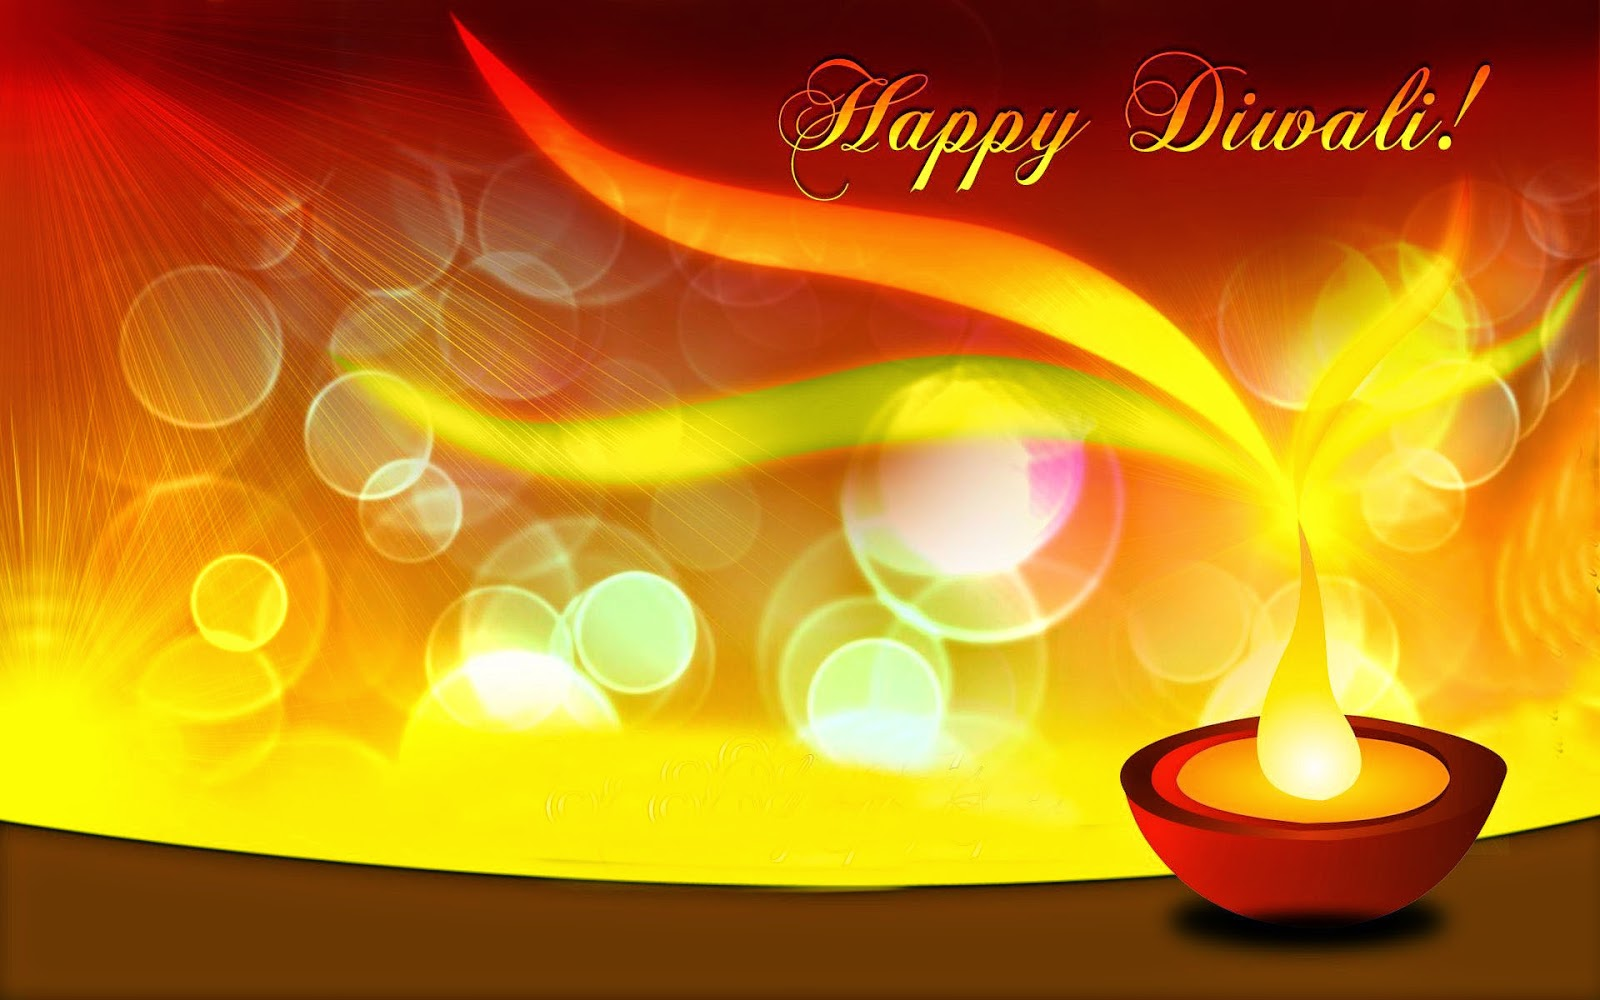 Happy Diwali 2014 Greeting And Wishes Hd Wallpapers Free Download